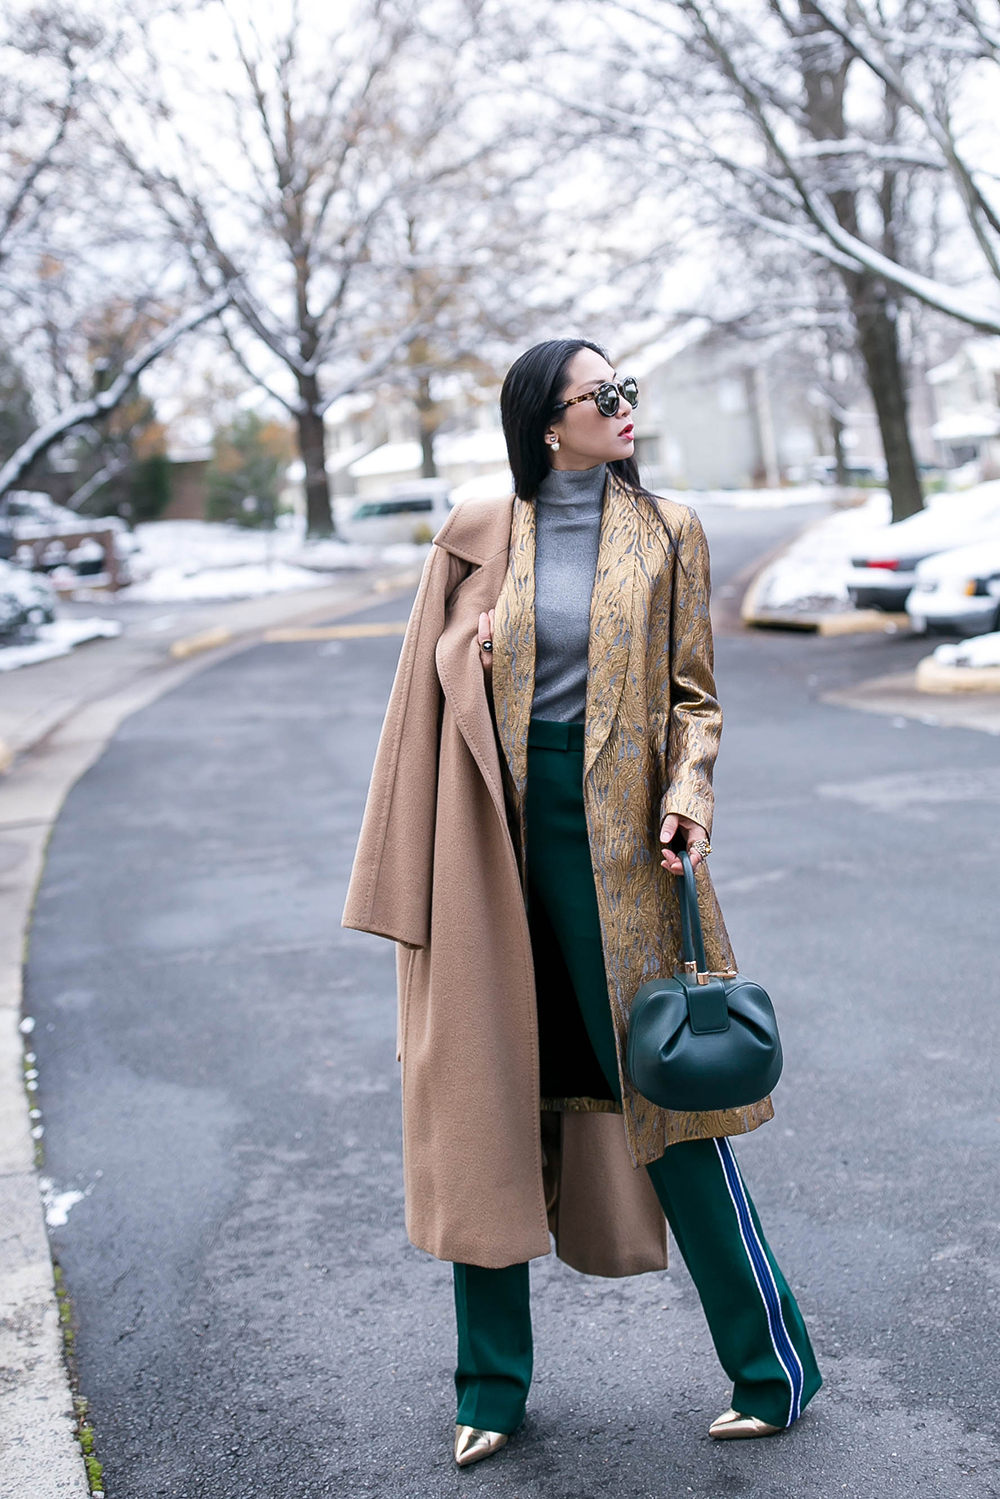 coat-layers-gold-and-green-petiteflowerpresents.jpg